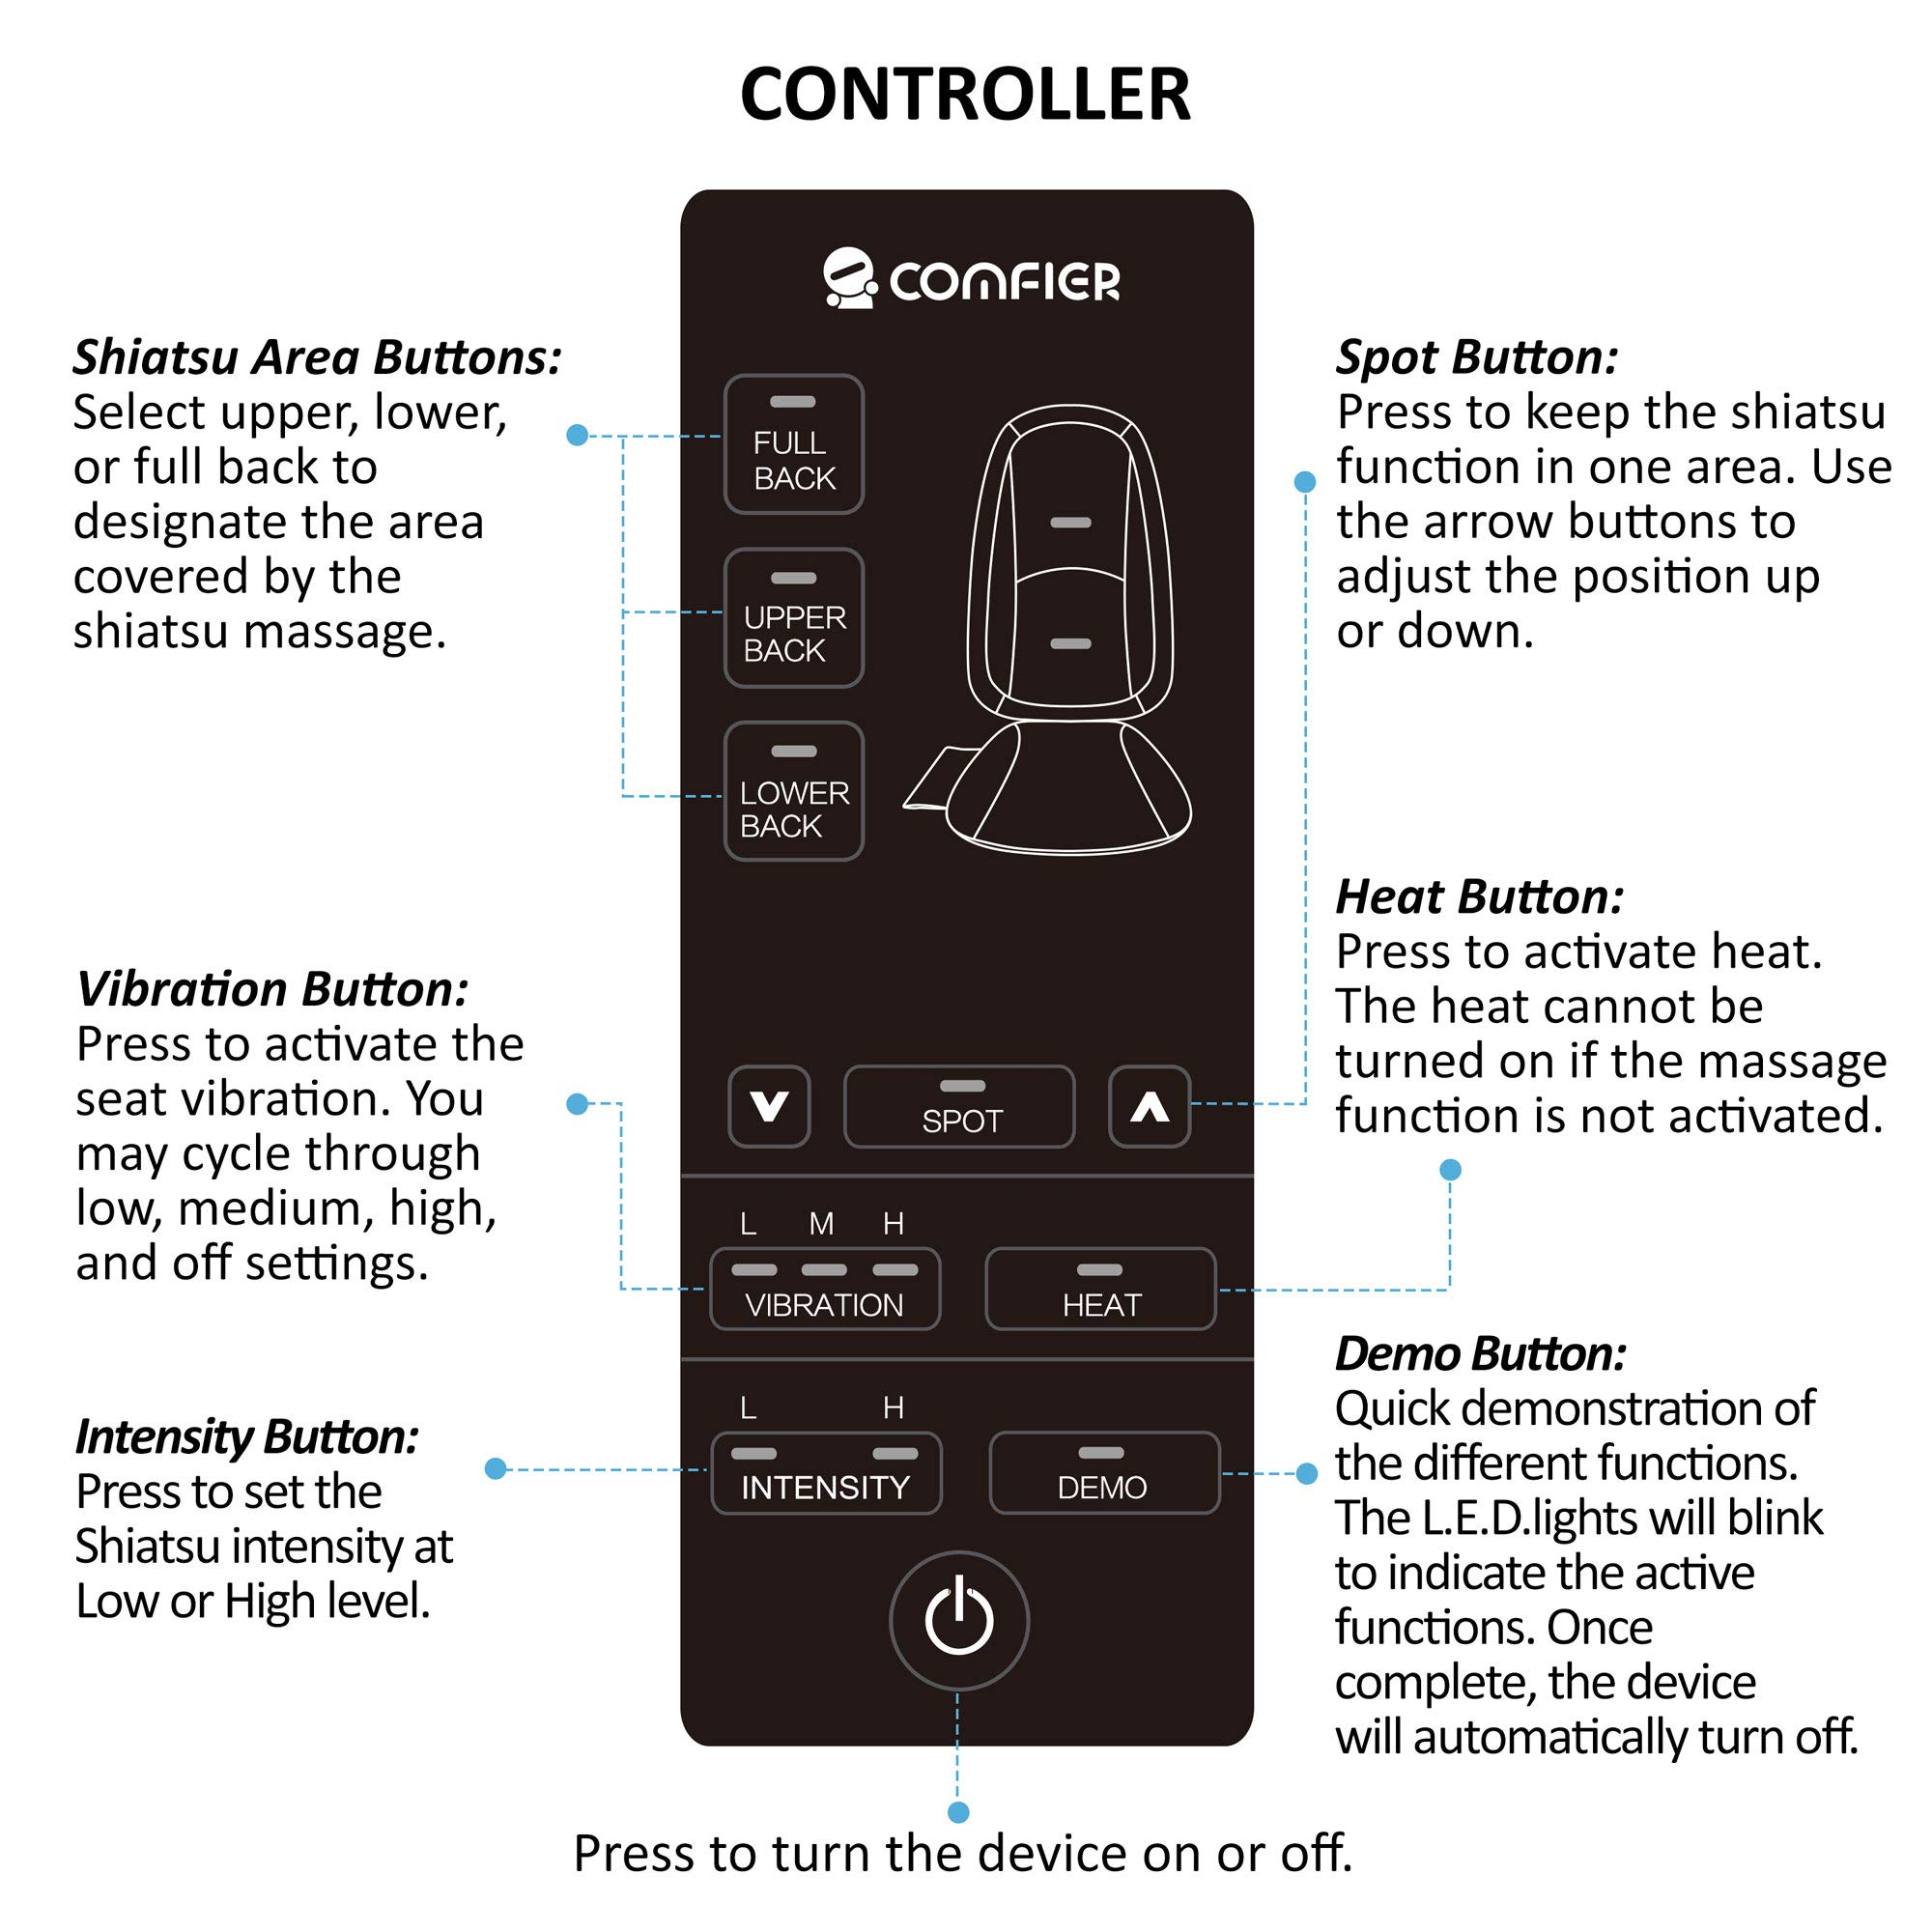 Comfier Shiatsu Back Massager with Heat -Deep Tissue Kneading Massage Seat Cushion, Massage Chair Pad for Full Back Pain Relief, Electric Body Massager for Home or Office Chair use by COMFIER (Image #7)